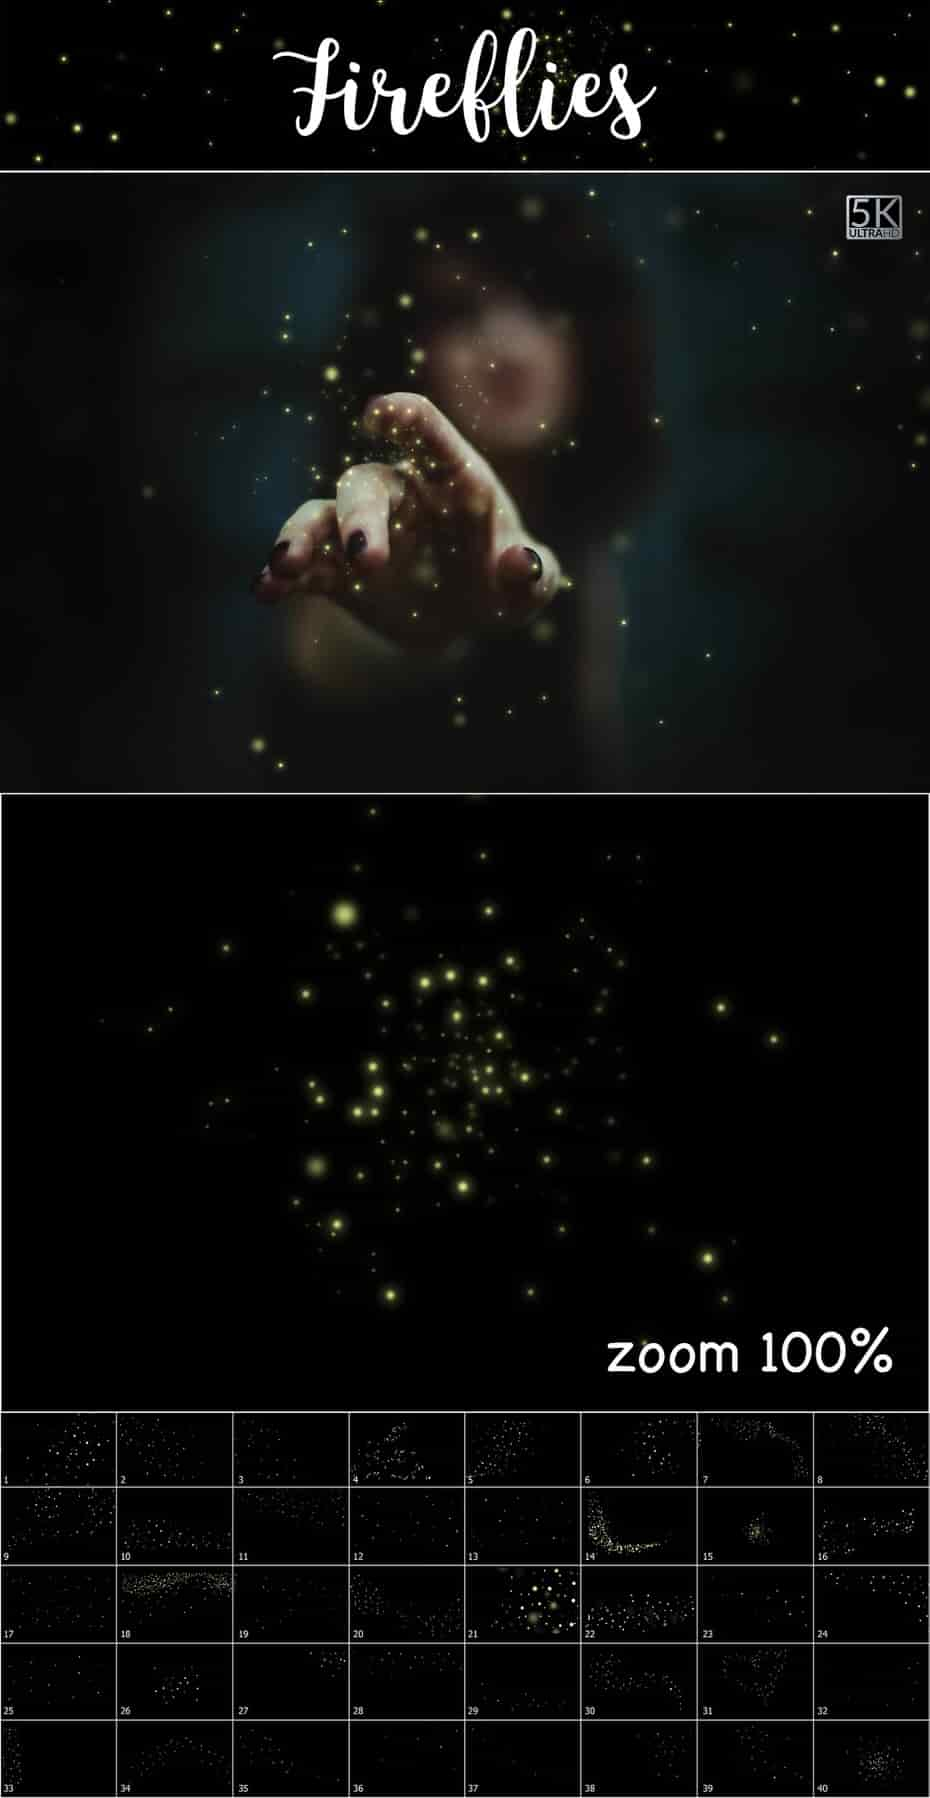 Over 11 400 Aesthetic Overlays Bundle SPECIAL OFF 98% - 17 Fireflies min